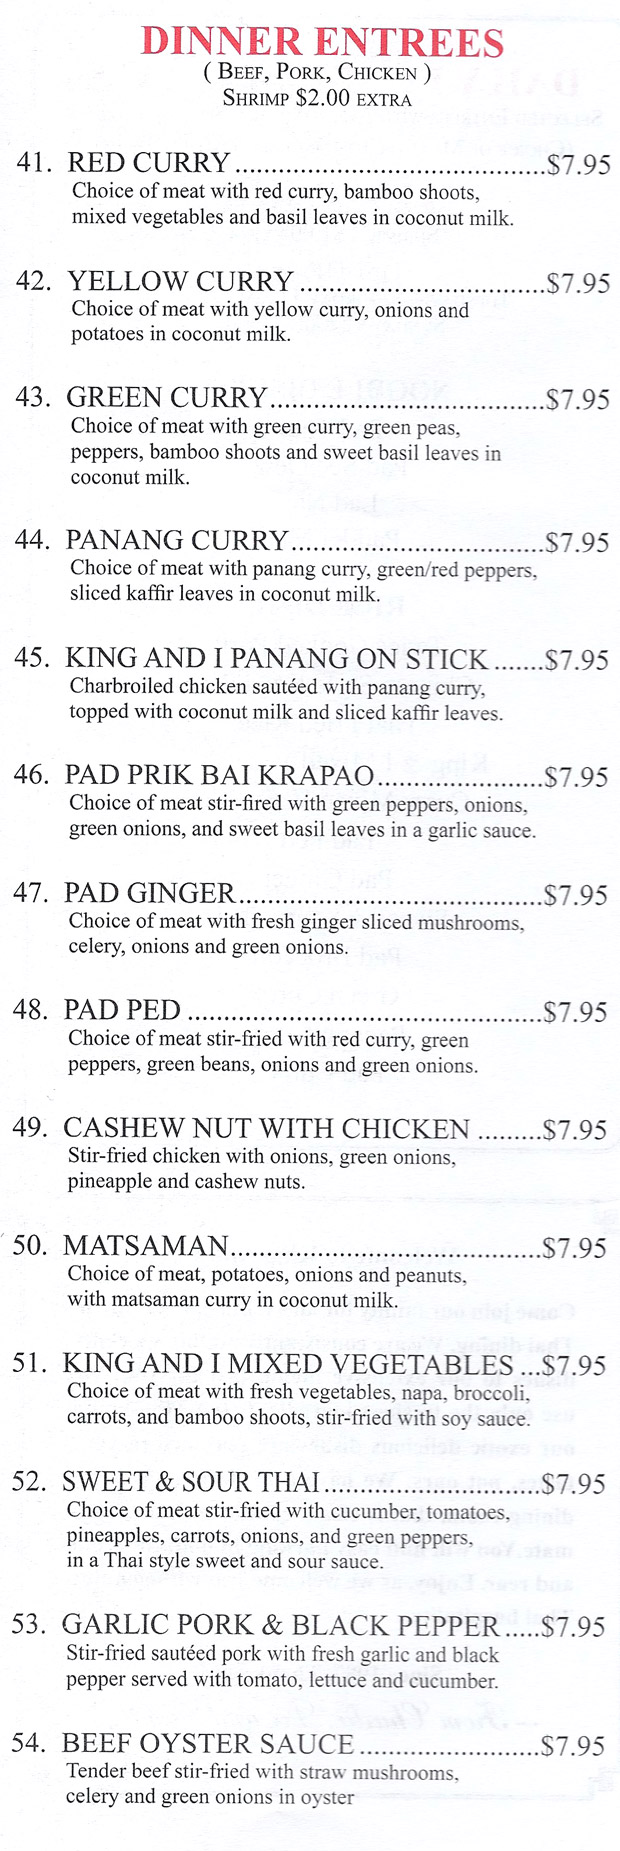 Menu for King & I Thai Restaurant in Oak Park, Illinois